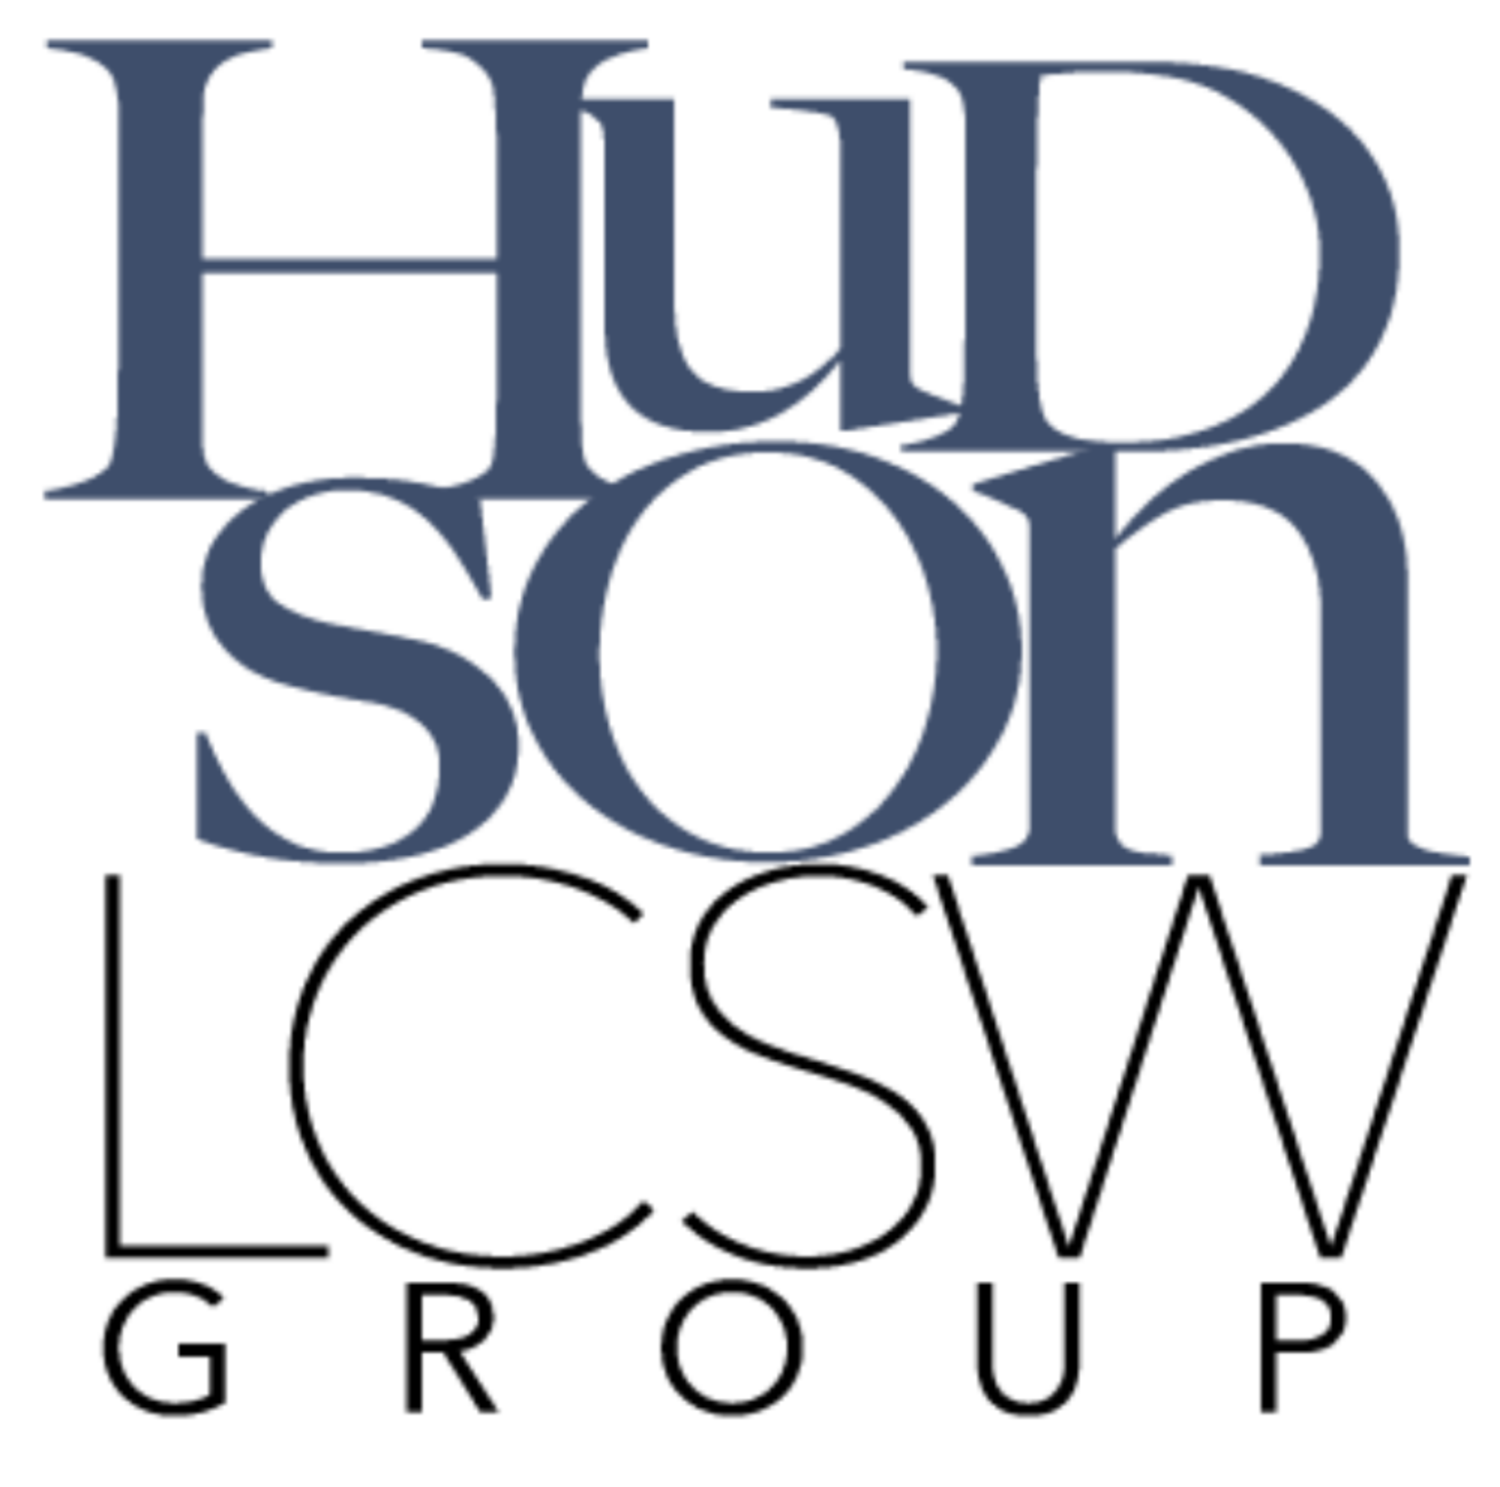 Therapists in Westchester NY Hudson LCSW Group therapists